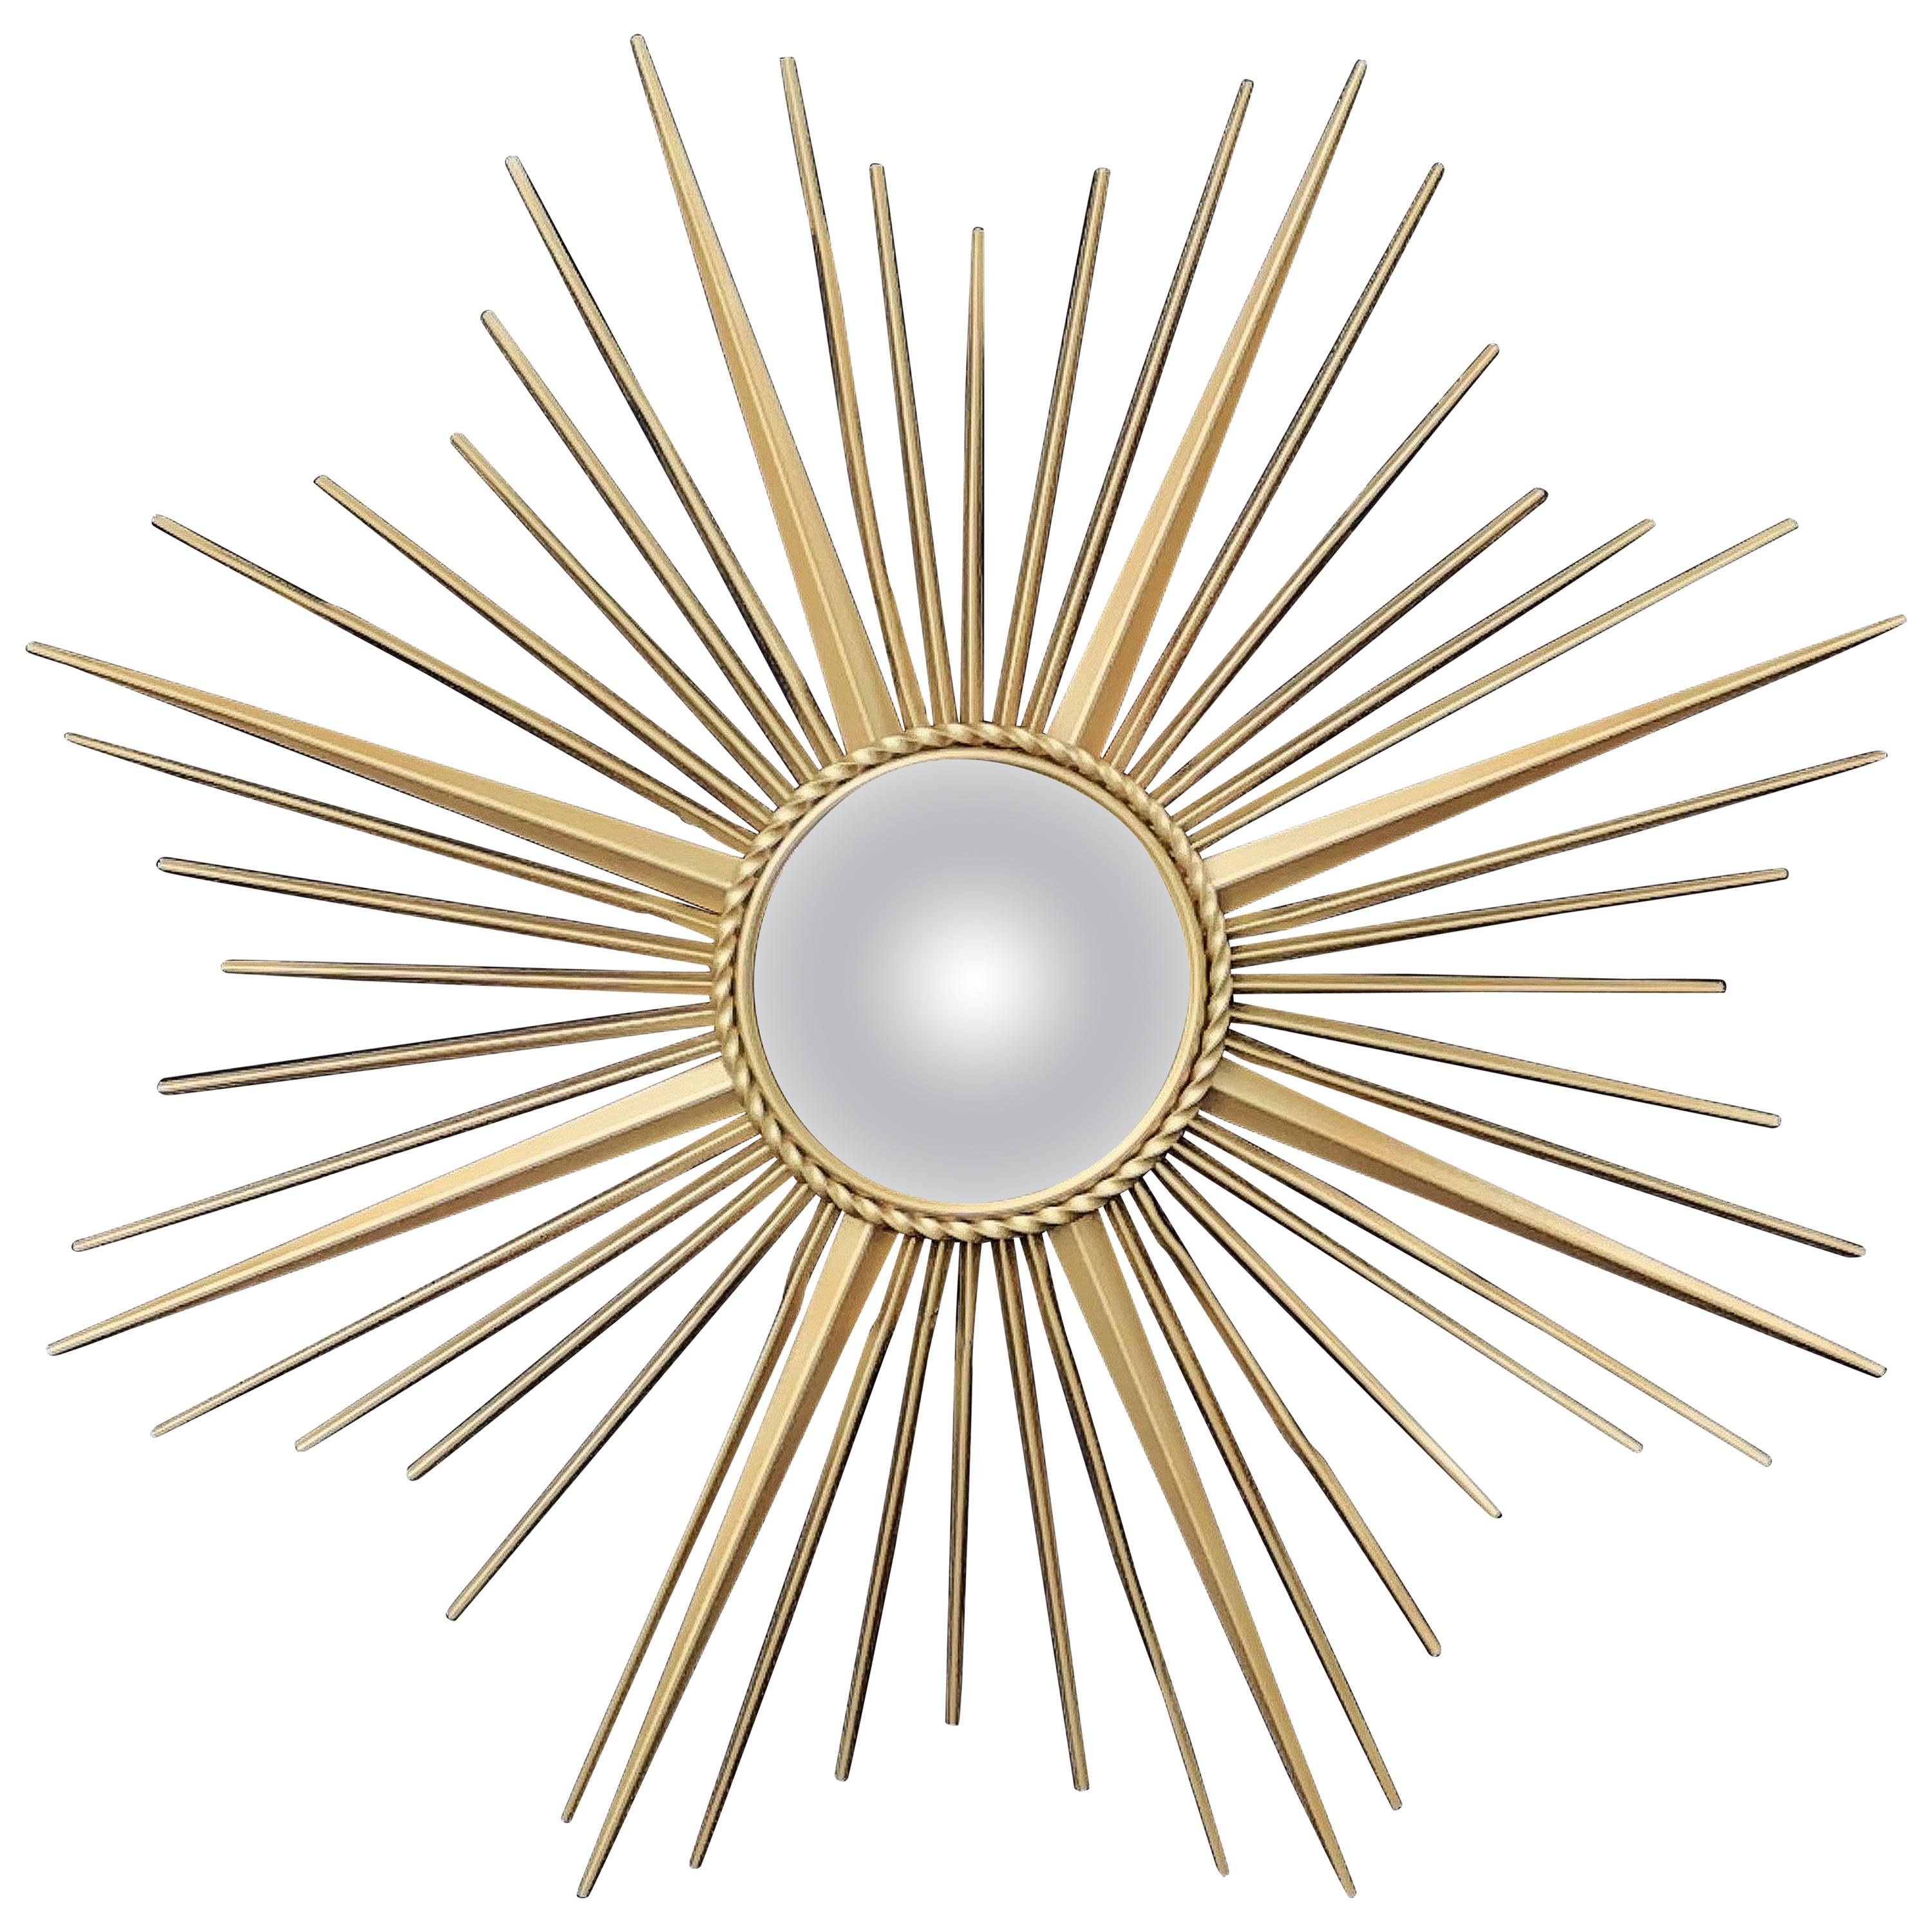 French Gilt Metal Sunburst or Starburst Mirror by Chaty Vallauris (Dia 33 3/4)